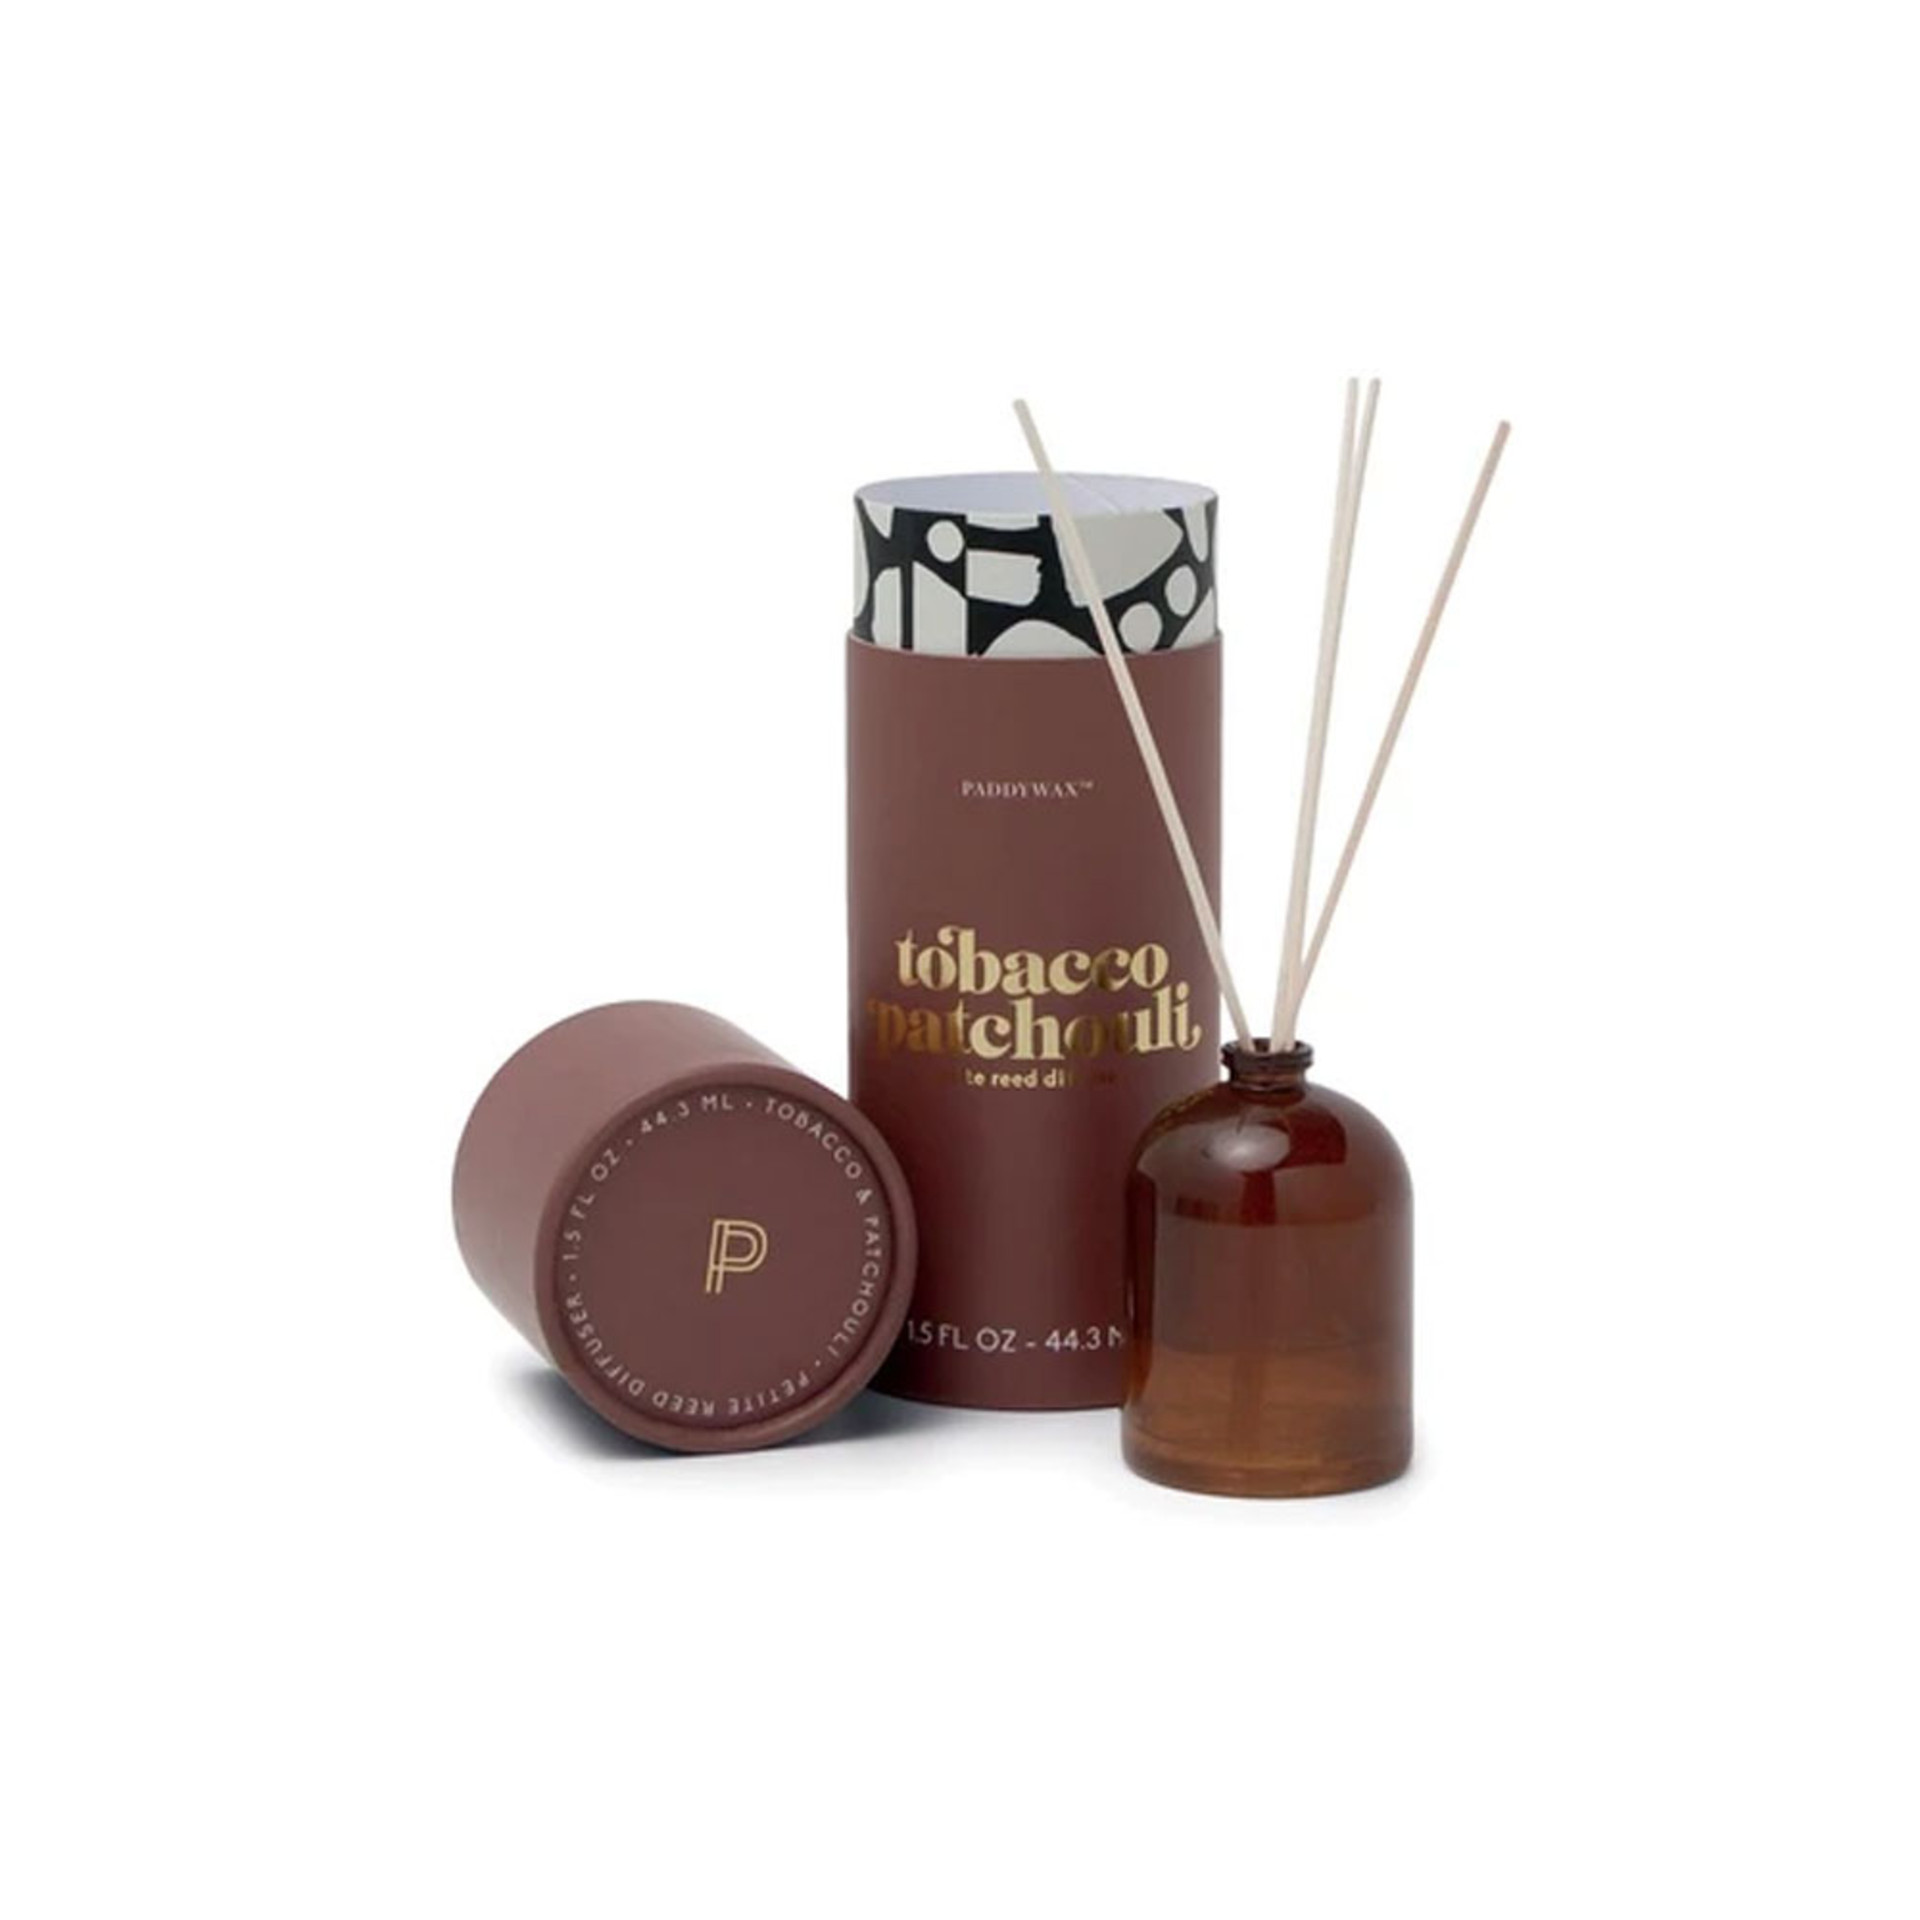 Paddywax Tobacco Patchouli Petite Diffuser